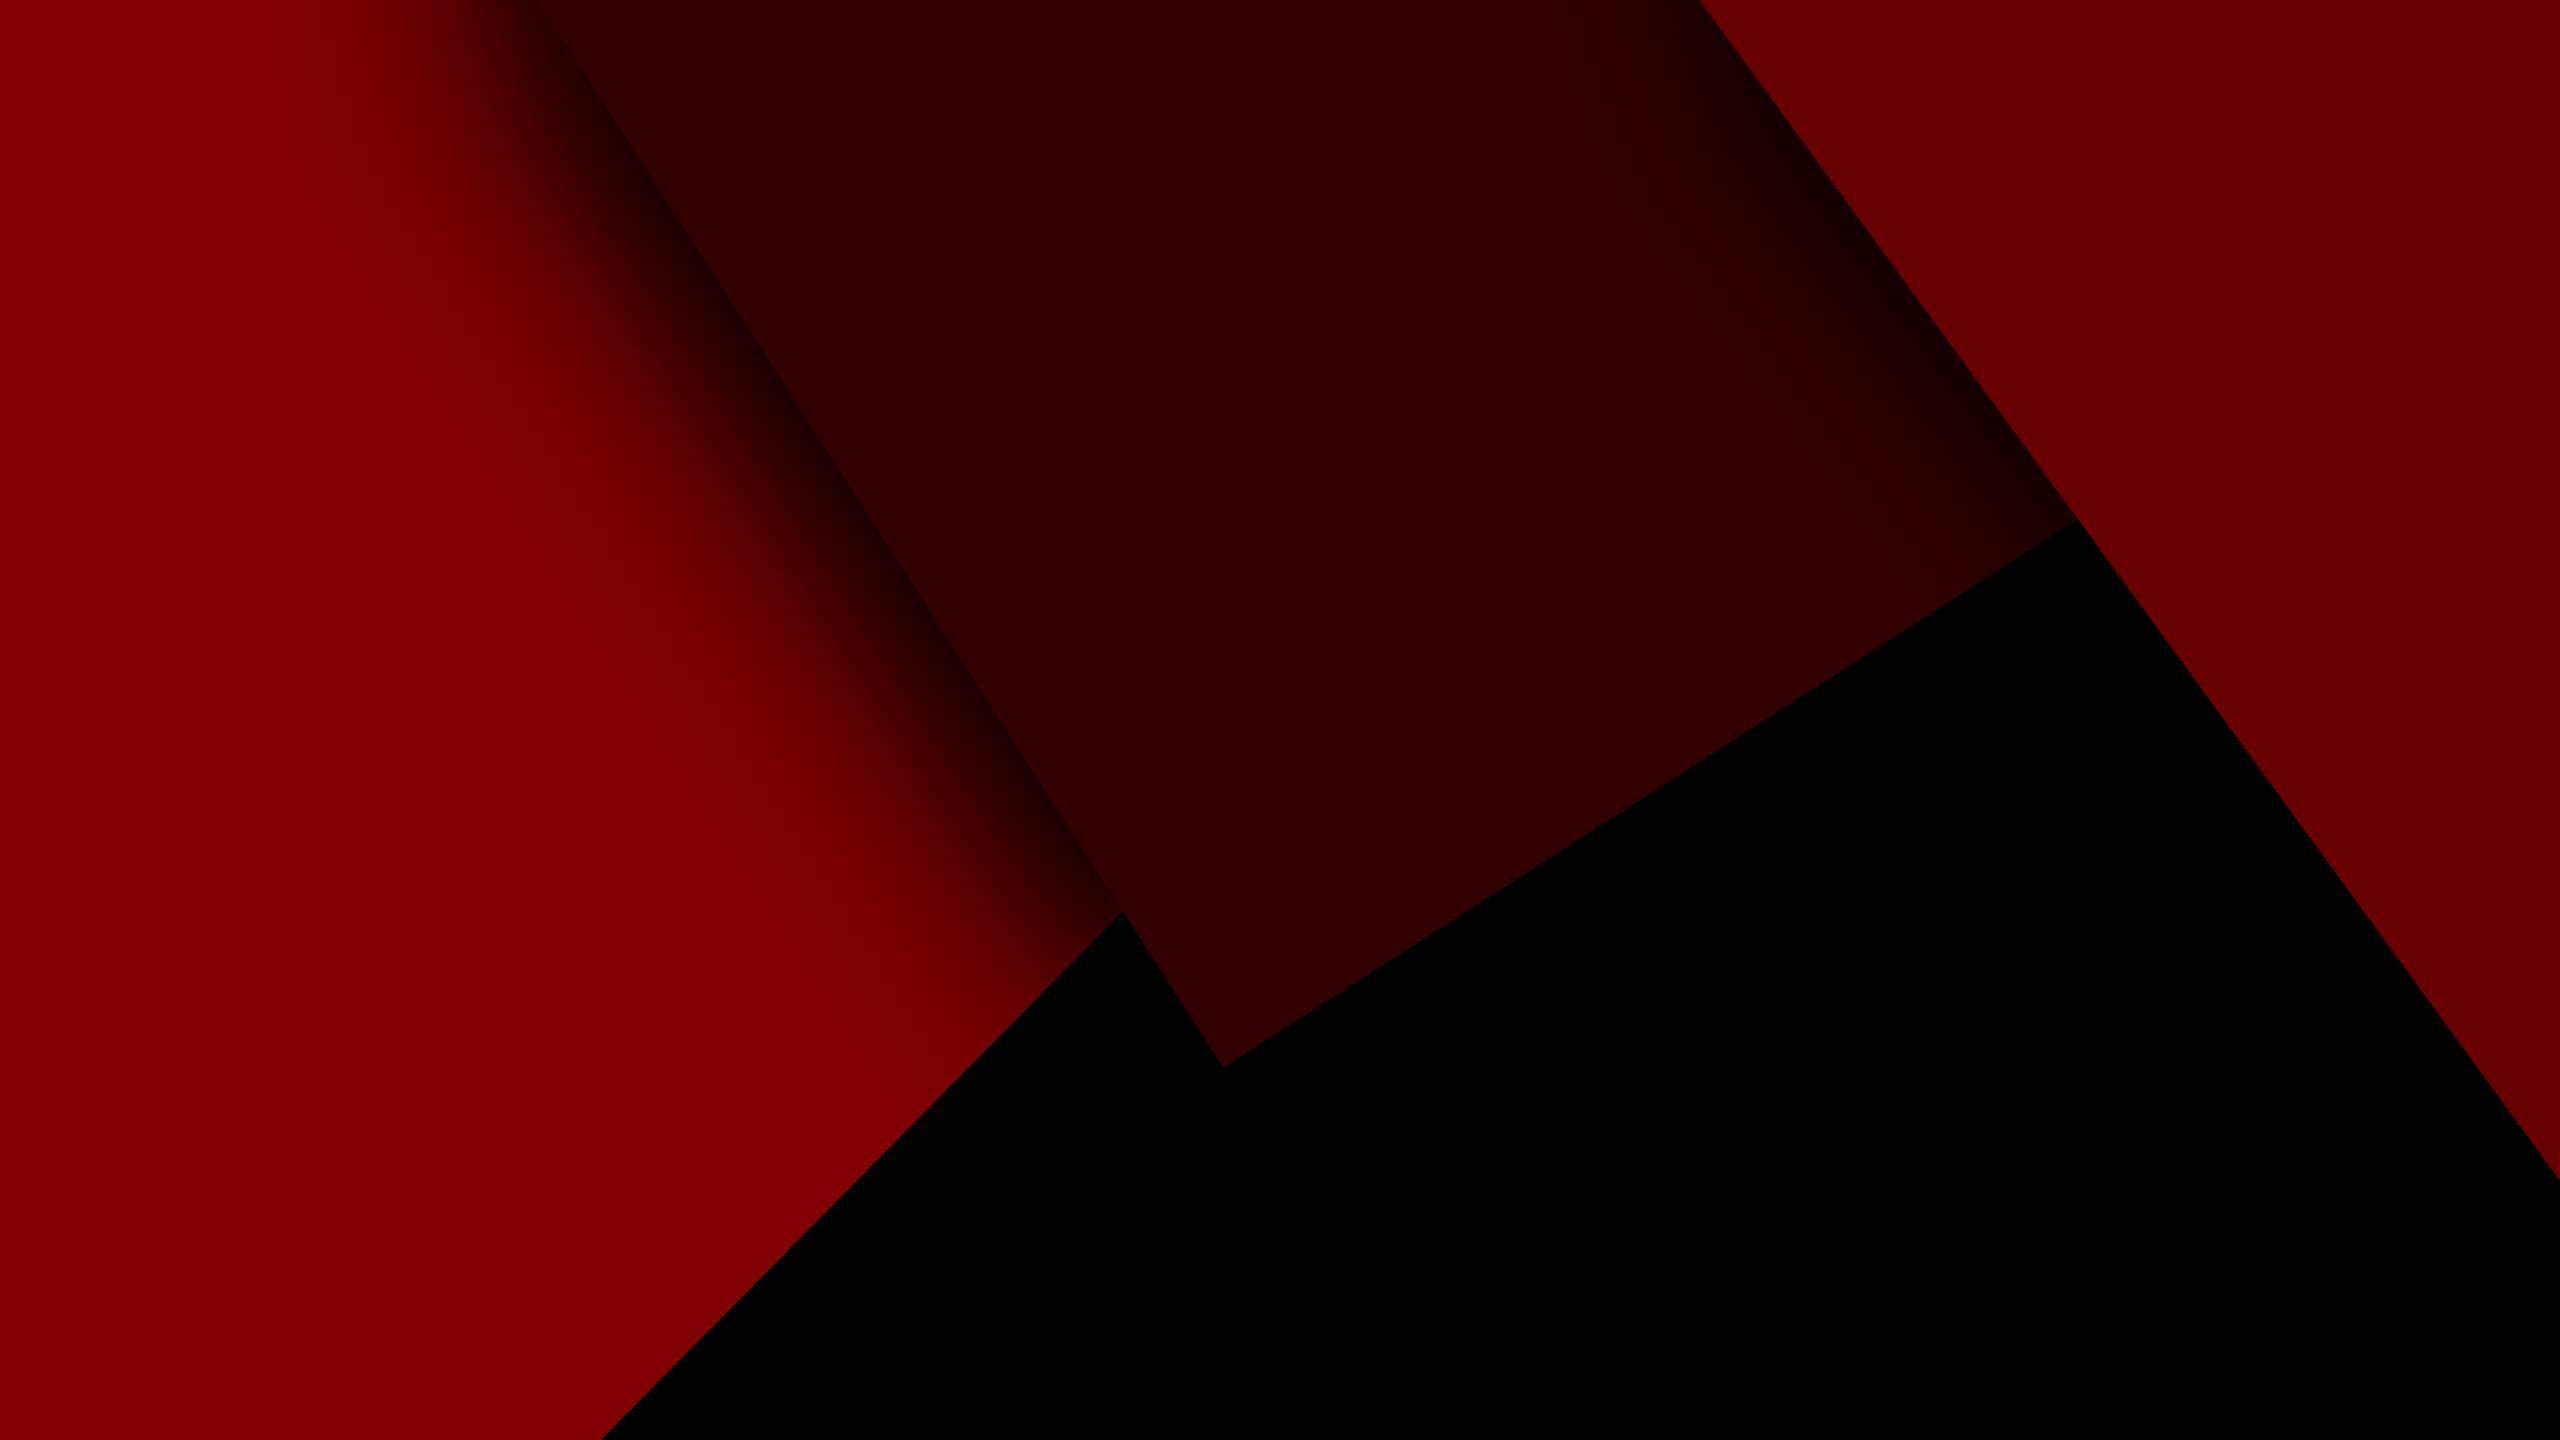 2560x1440 Dark Red Black Abstract 4k 1440p Resolution Hd 4k Wallpapers Images Backgrounds Photos And Pictures